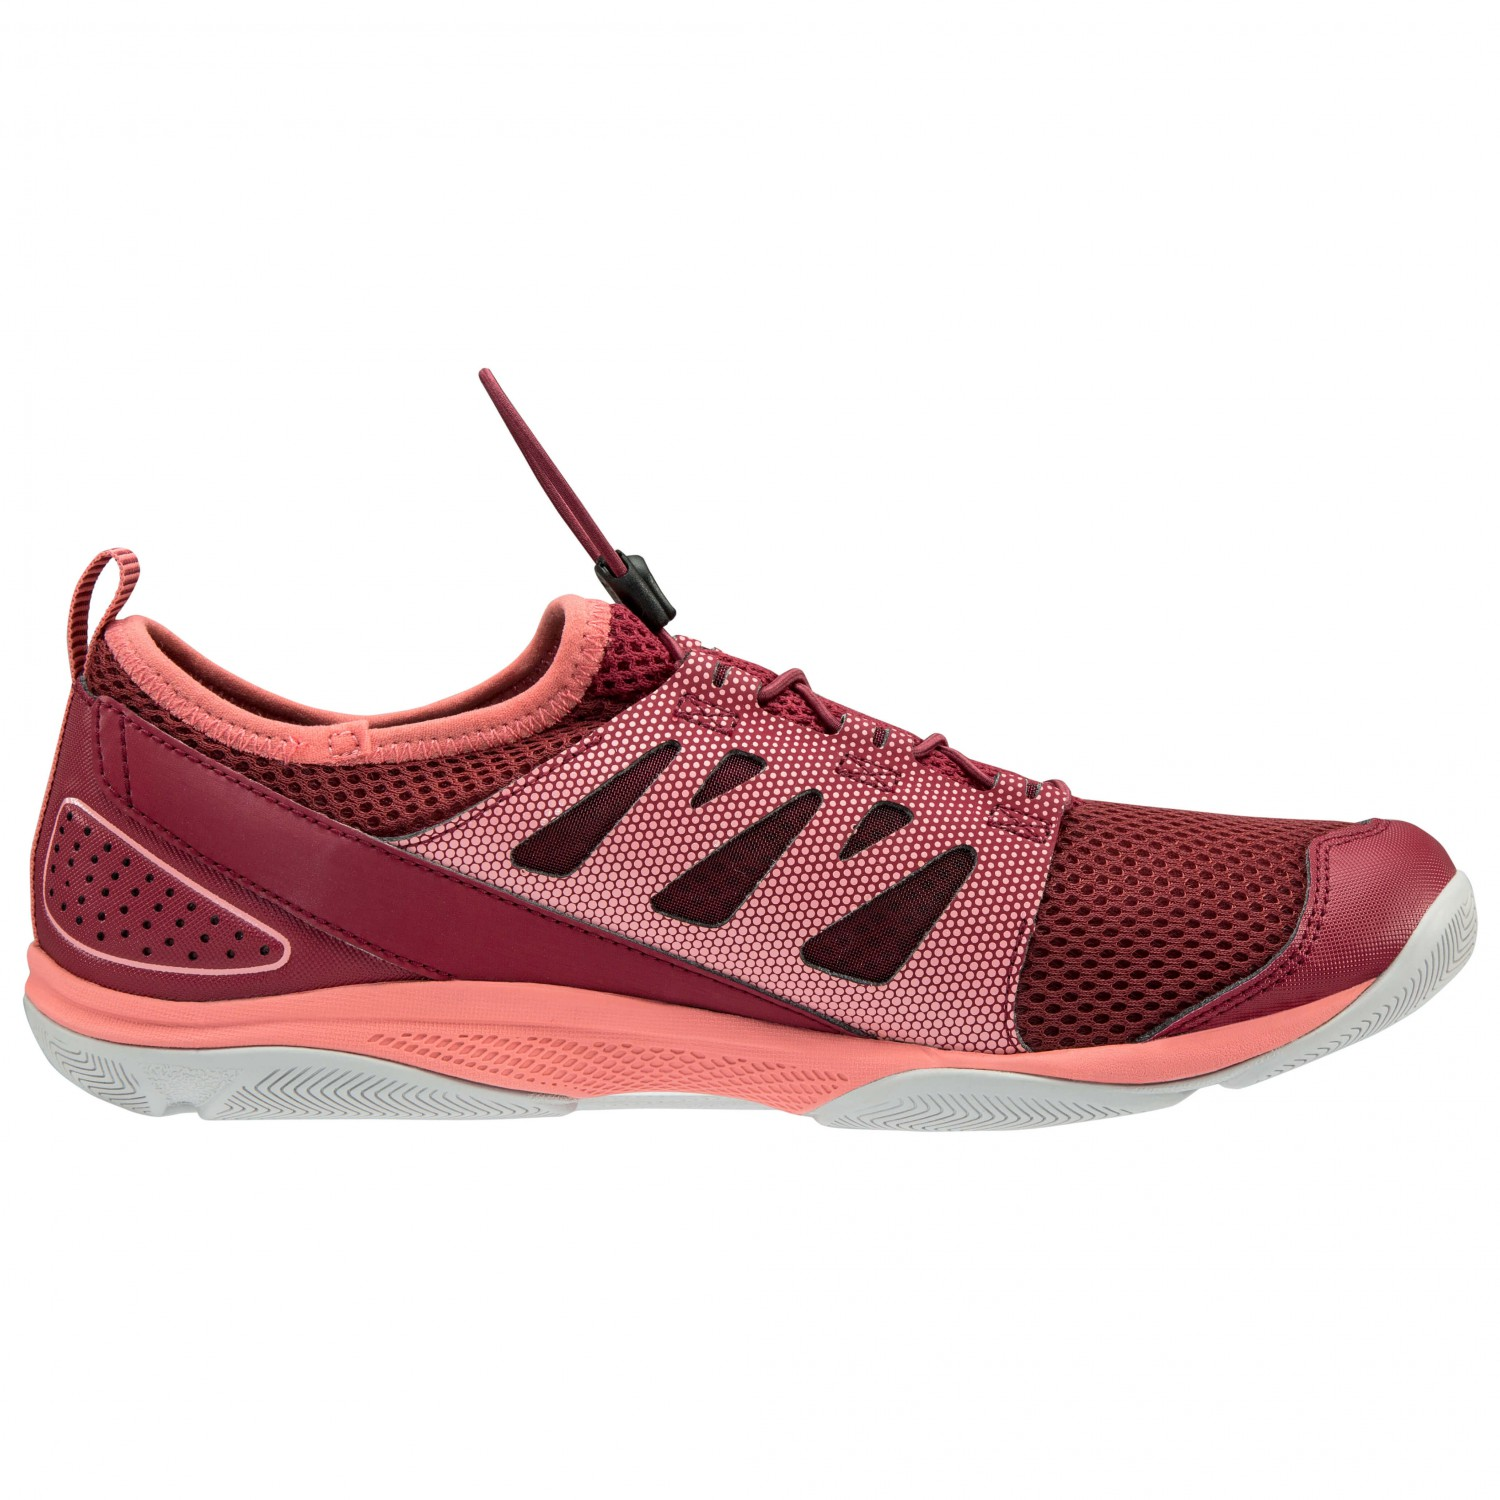 Helly Hansen Womens Water Shoes